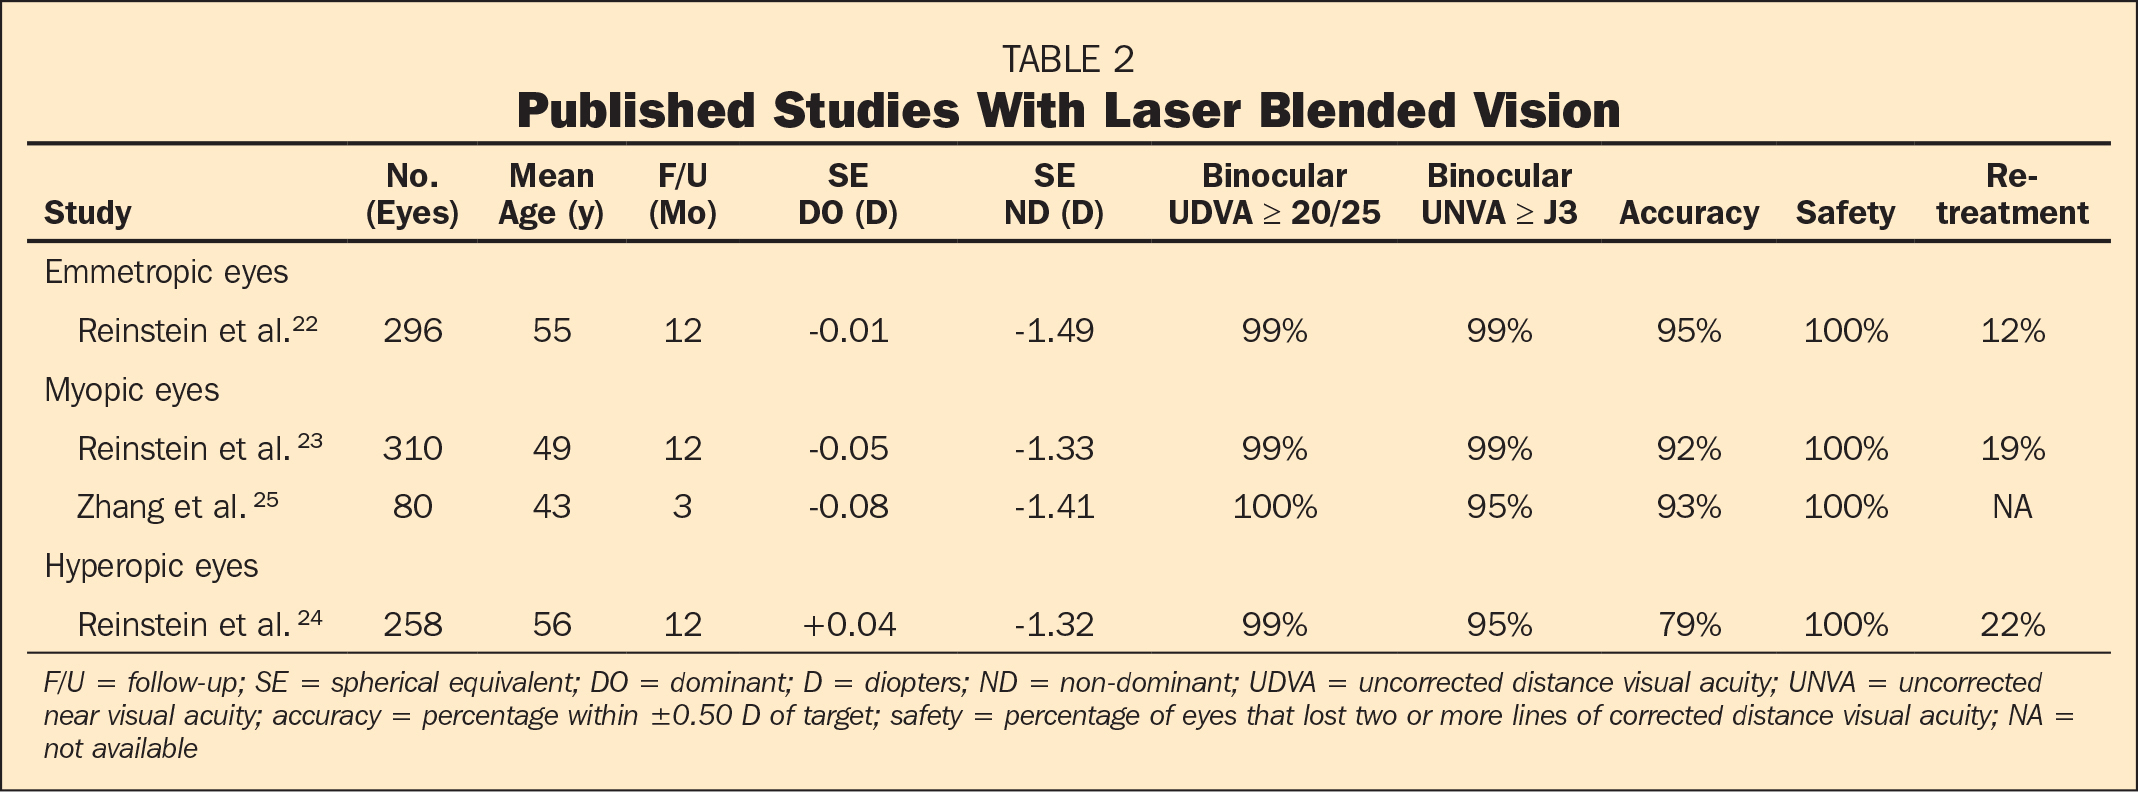 Published Studies With Laser Blended Vision